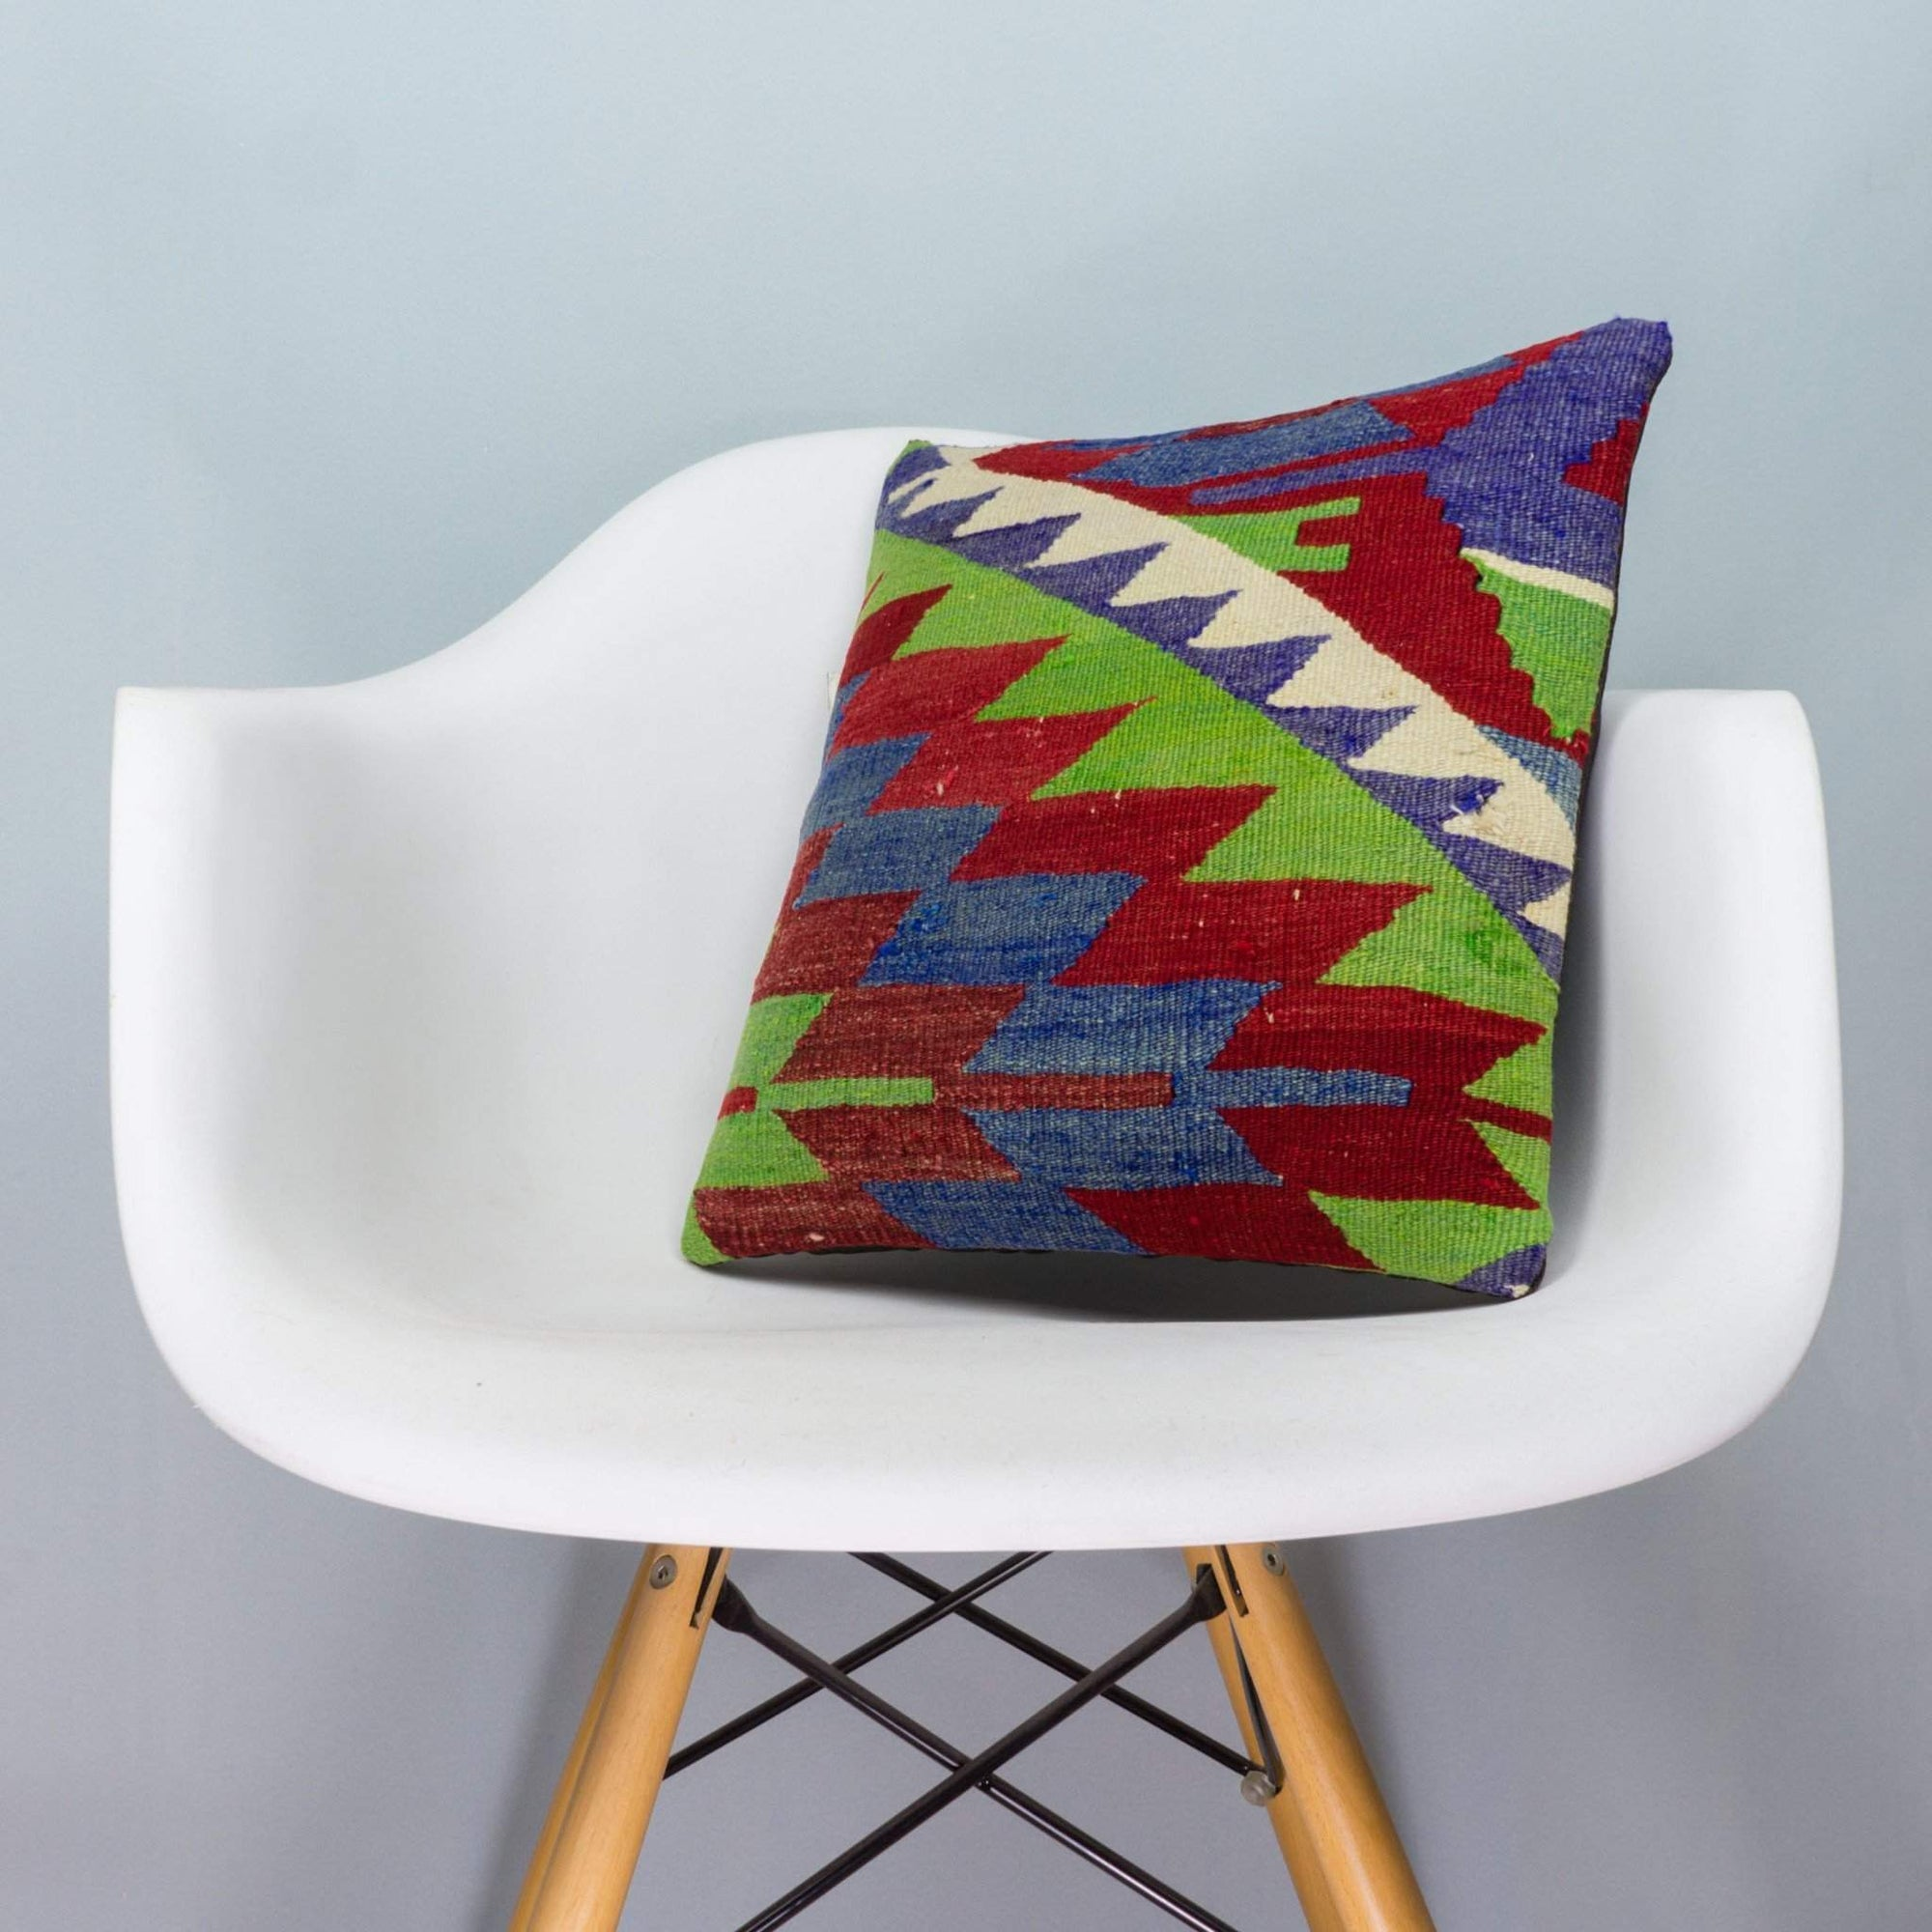 Chevron Multi Color Kilim Pillow Cover 16x16 3973